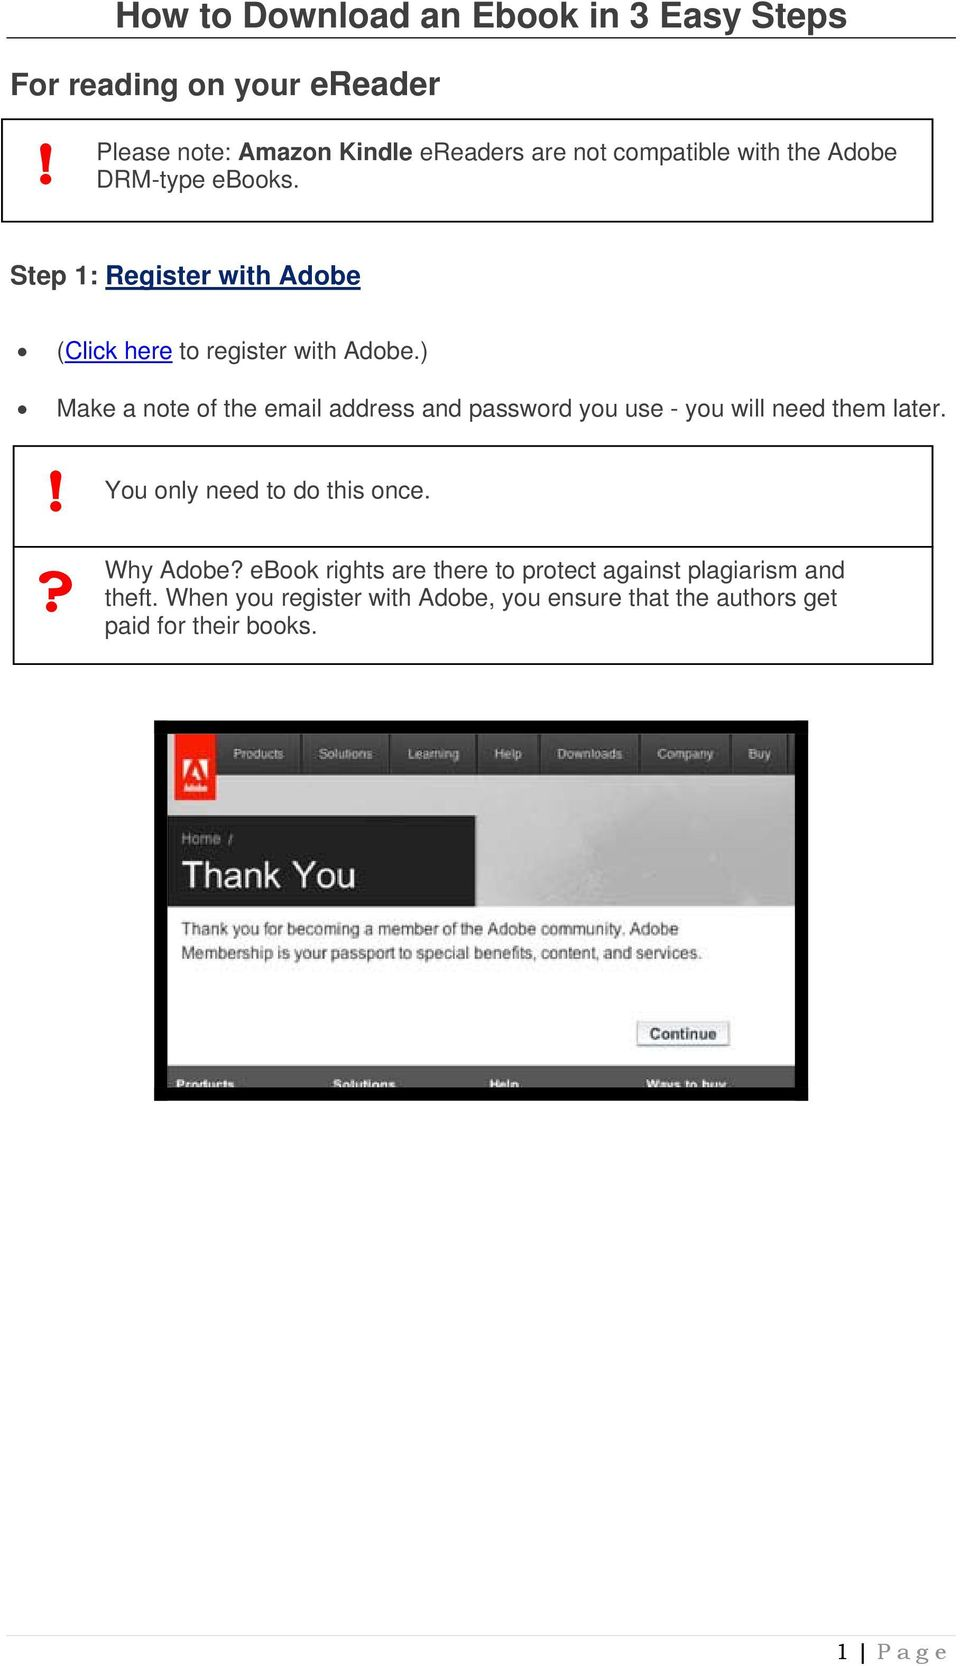 ) Make a note of the email address and password you use - you will need them later.? Why Adobe?